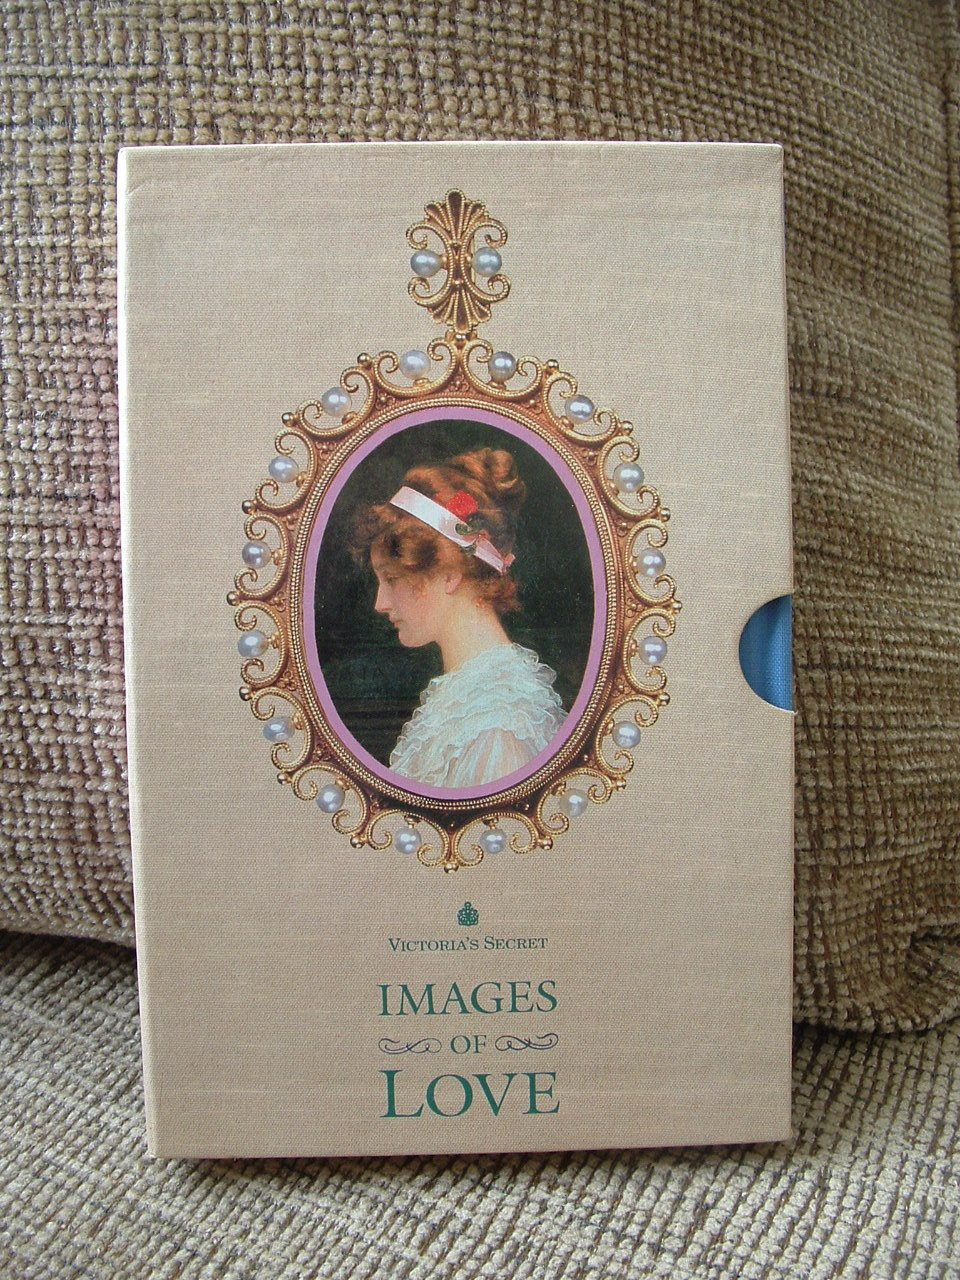 VICTORIA'S SECRET IMAGES OF LOVE VOLUME 2 HARDCOVER BOOK with Sleeve - SCENTED - NEW!